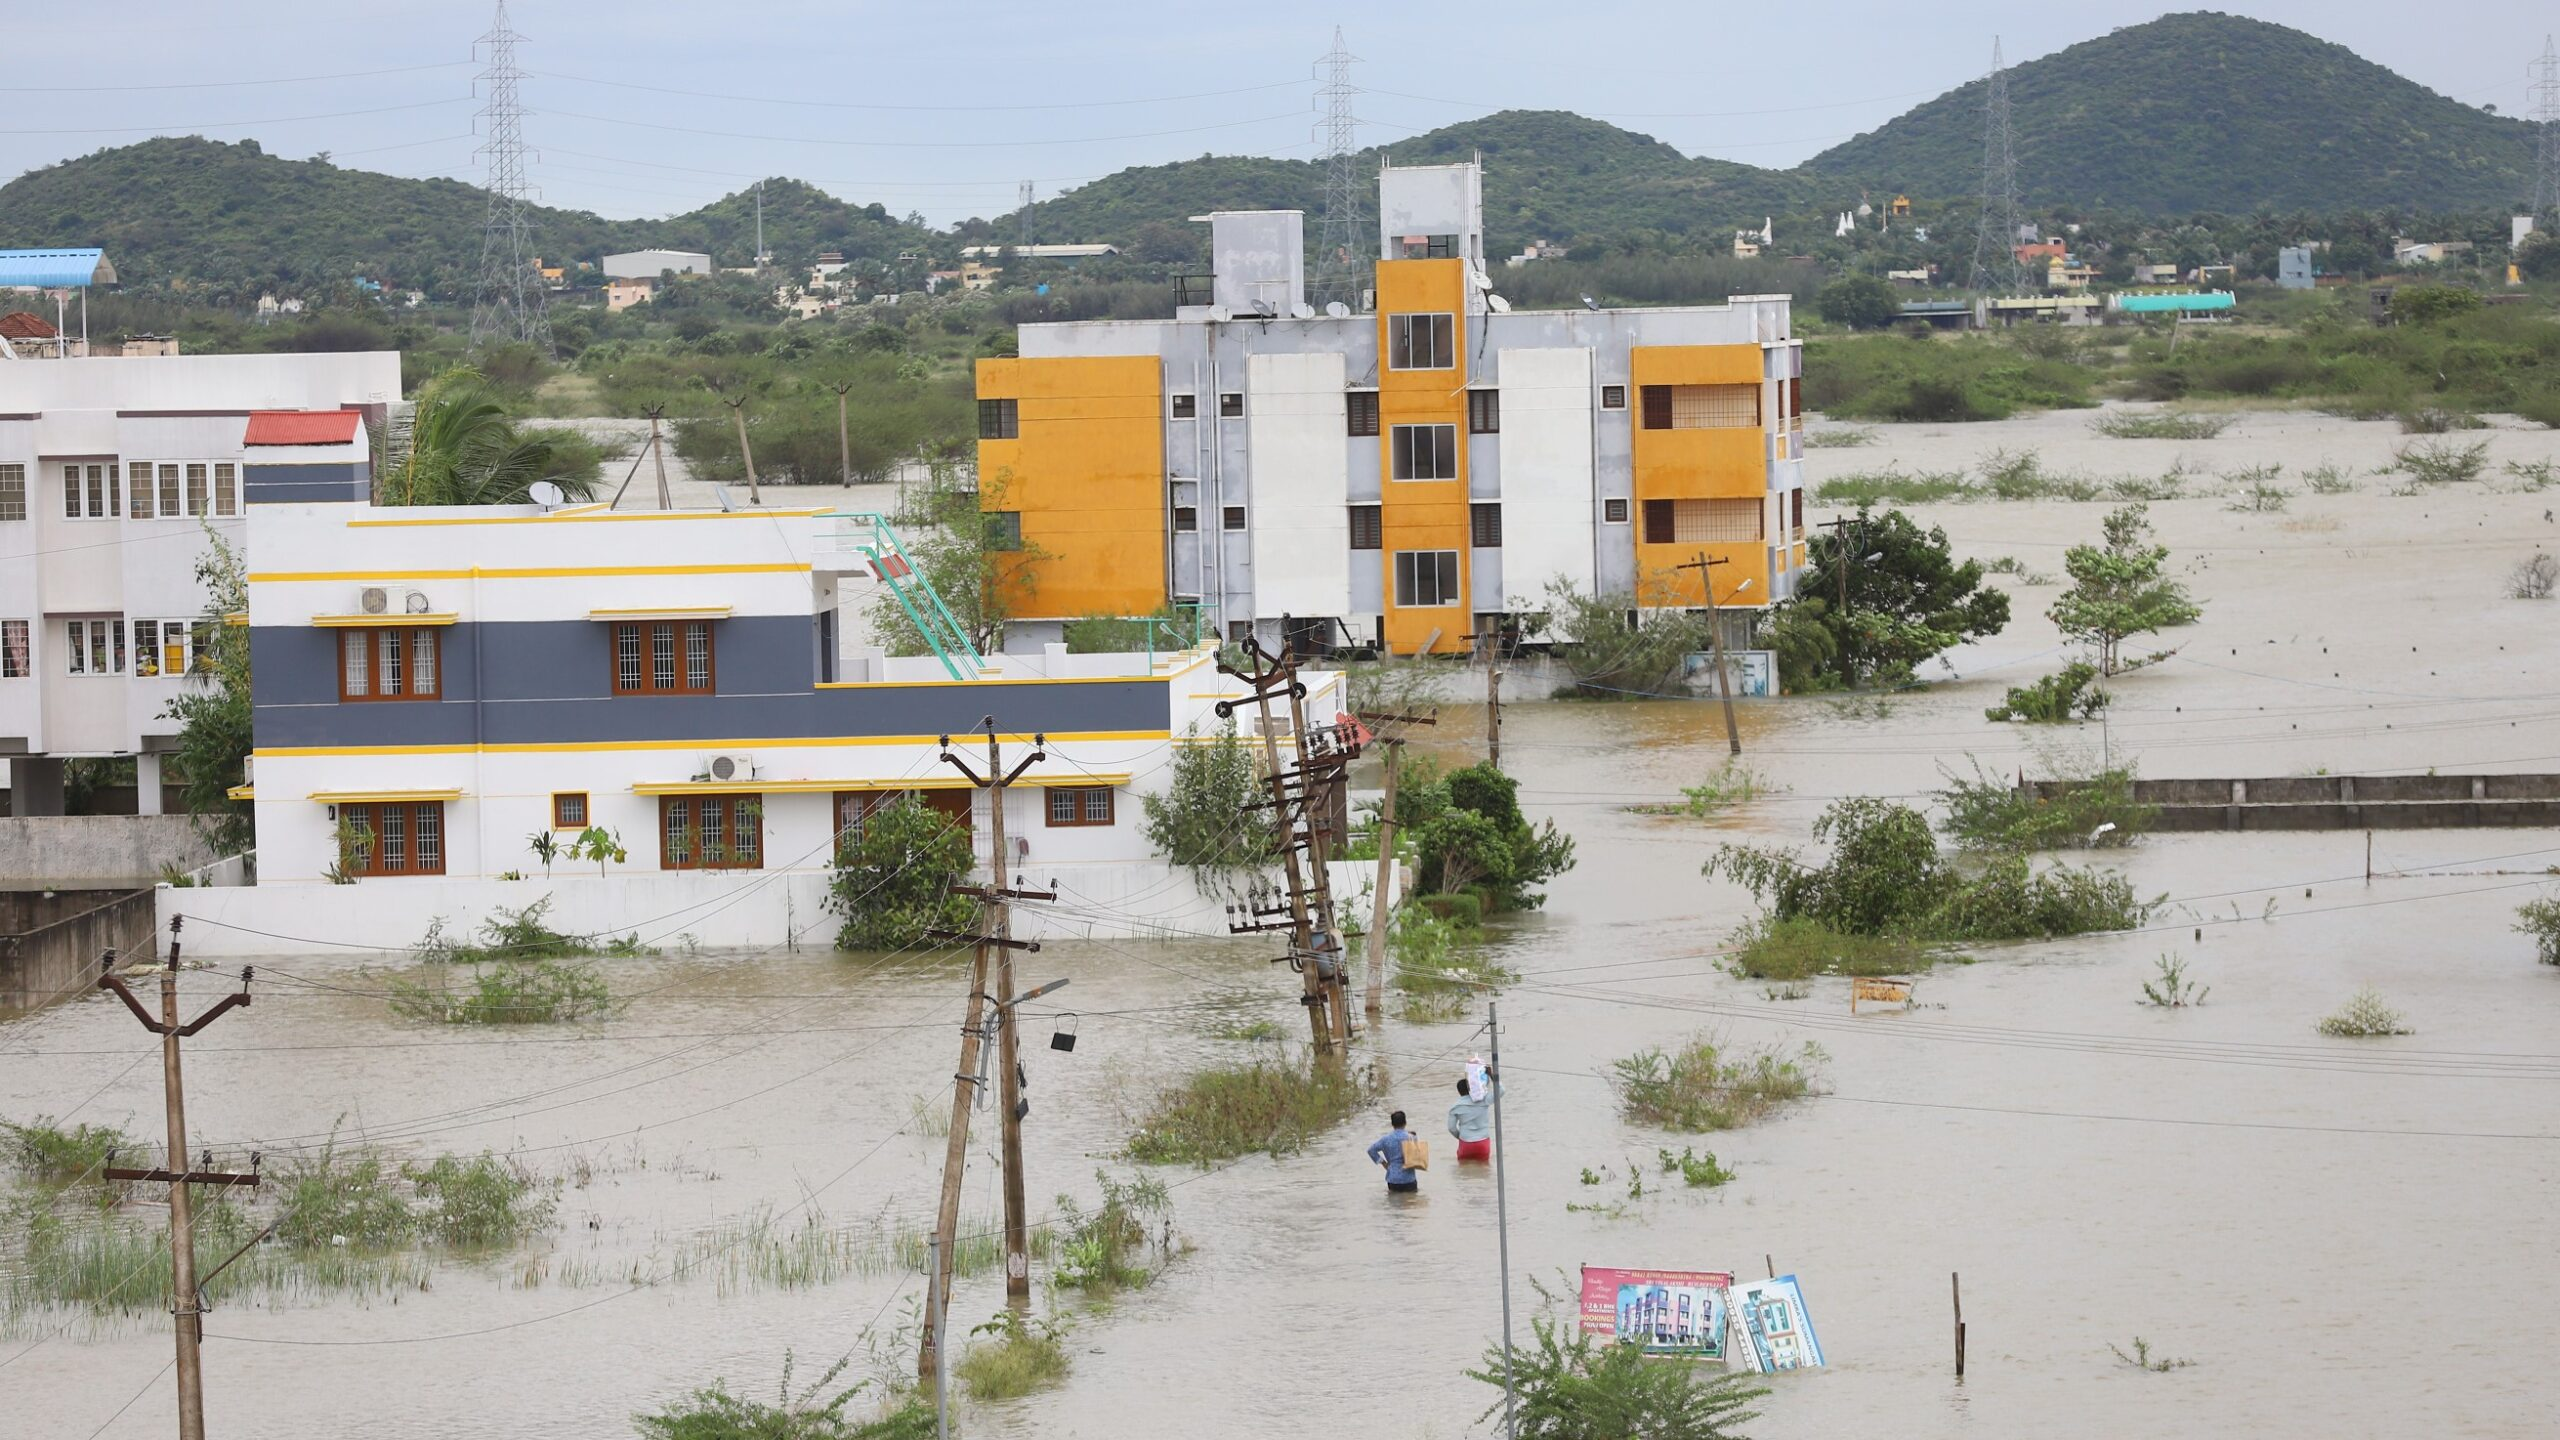 India's Southern Metropolis Flooded by Cyclone Nivar